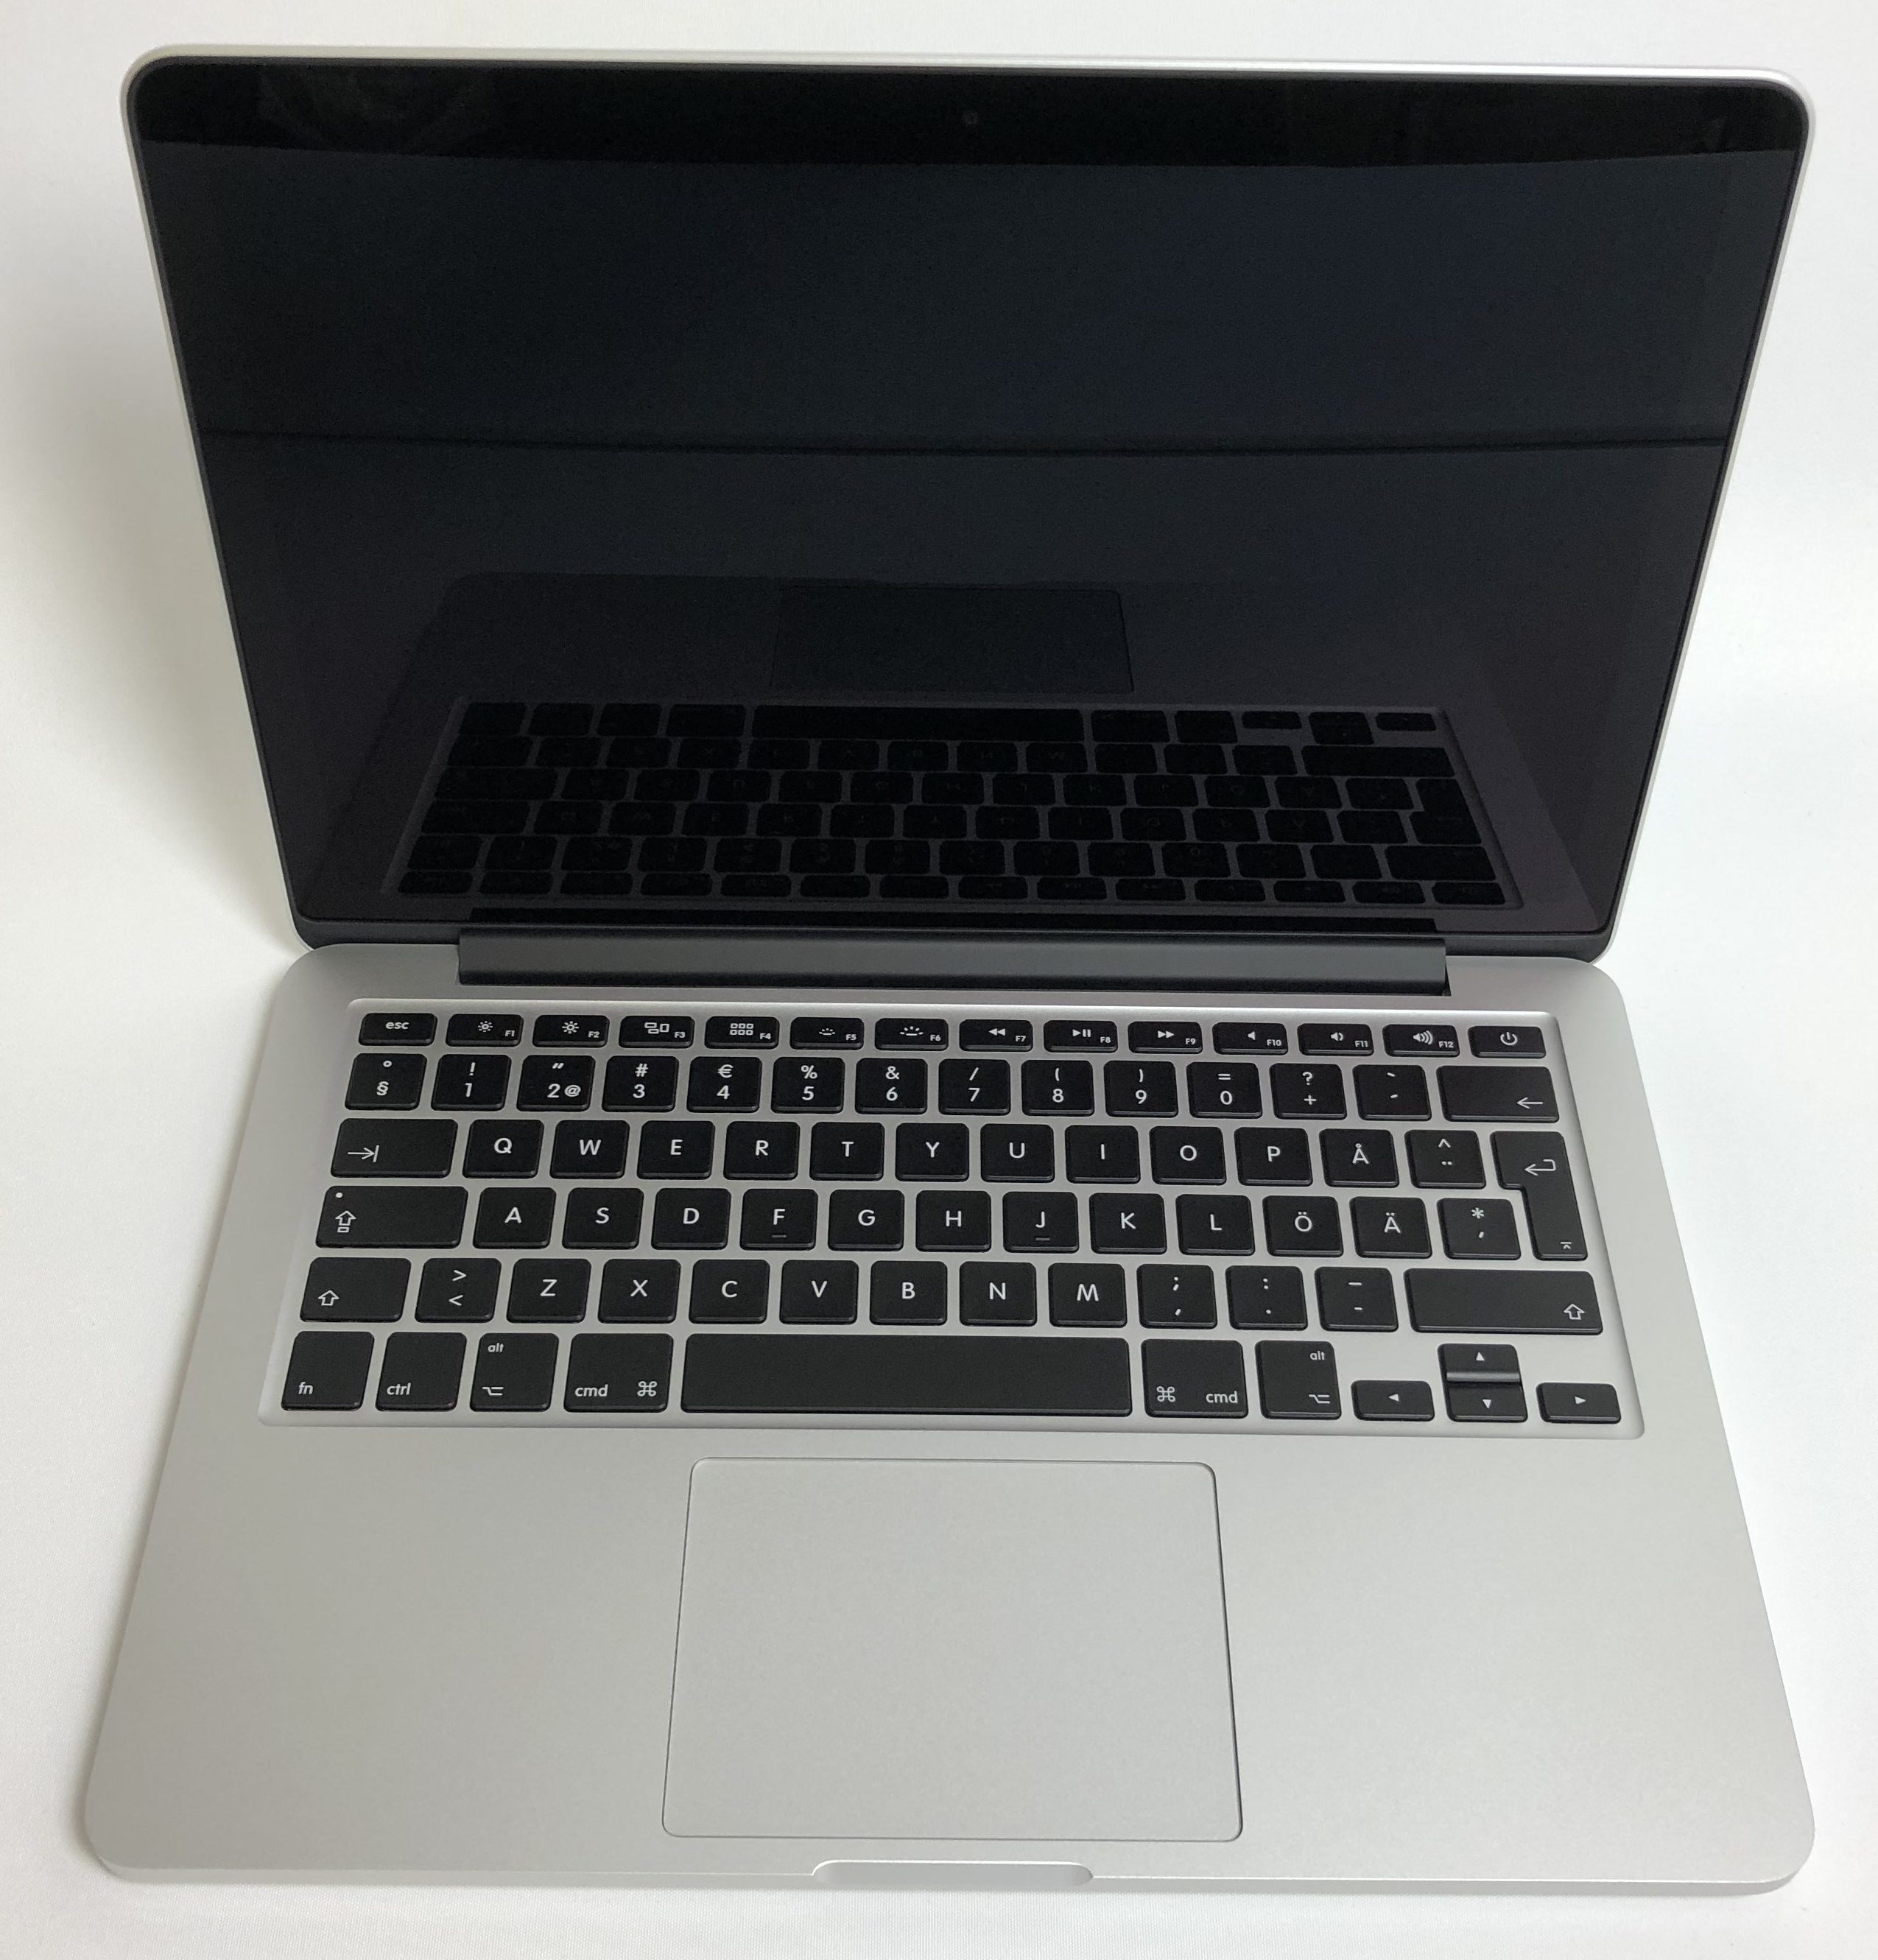 "MacBook Pro Retina 13"" Early 2015 (Intel Core i5 2.7 GHz 8 GB RAM 128 GB SSD), Intel Core i5 2.7 GHz, 8 GB RAM, 128 GB SSD, Kuva 1"